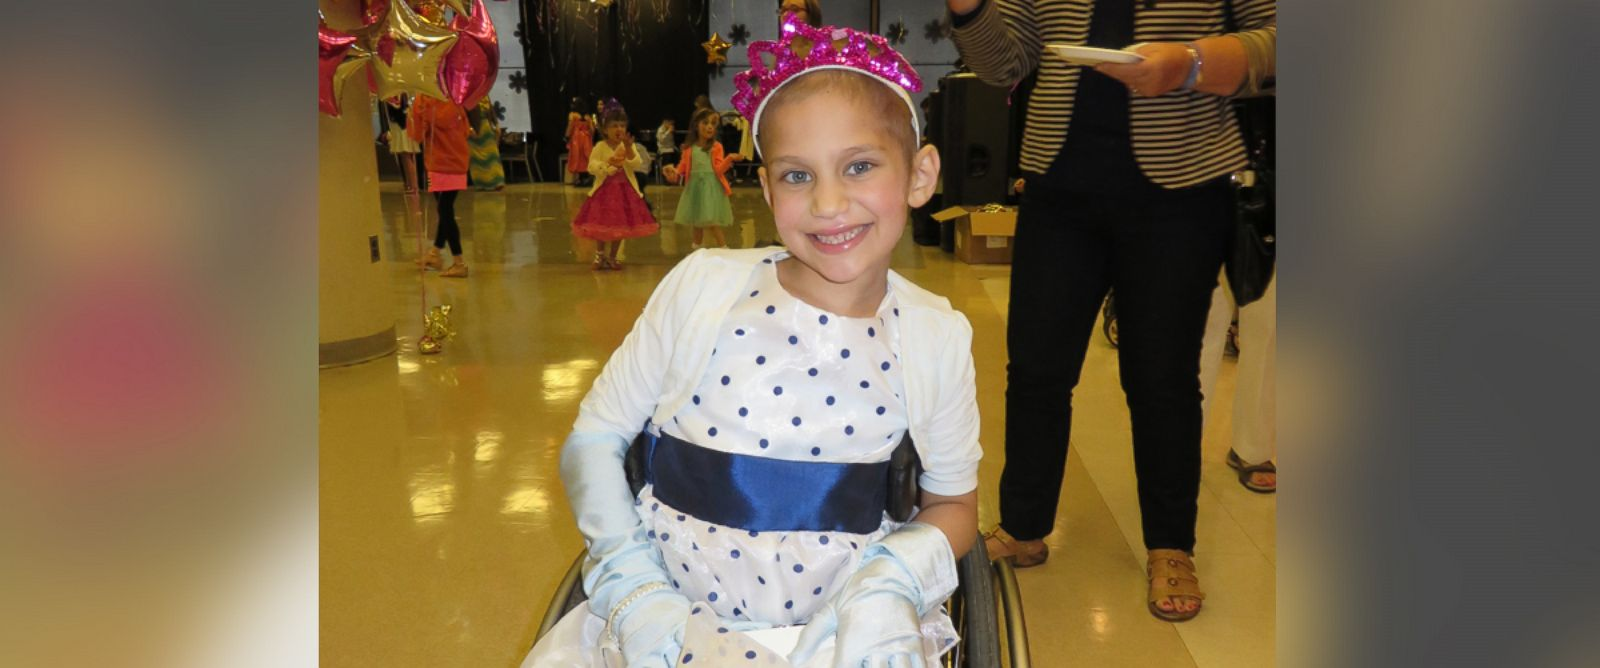 PHOTO: This Memorial Sloan Kettering patient is ready to party at the Pediatric Prom.